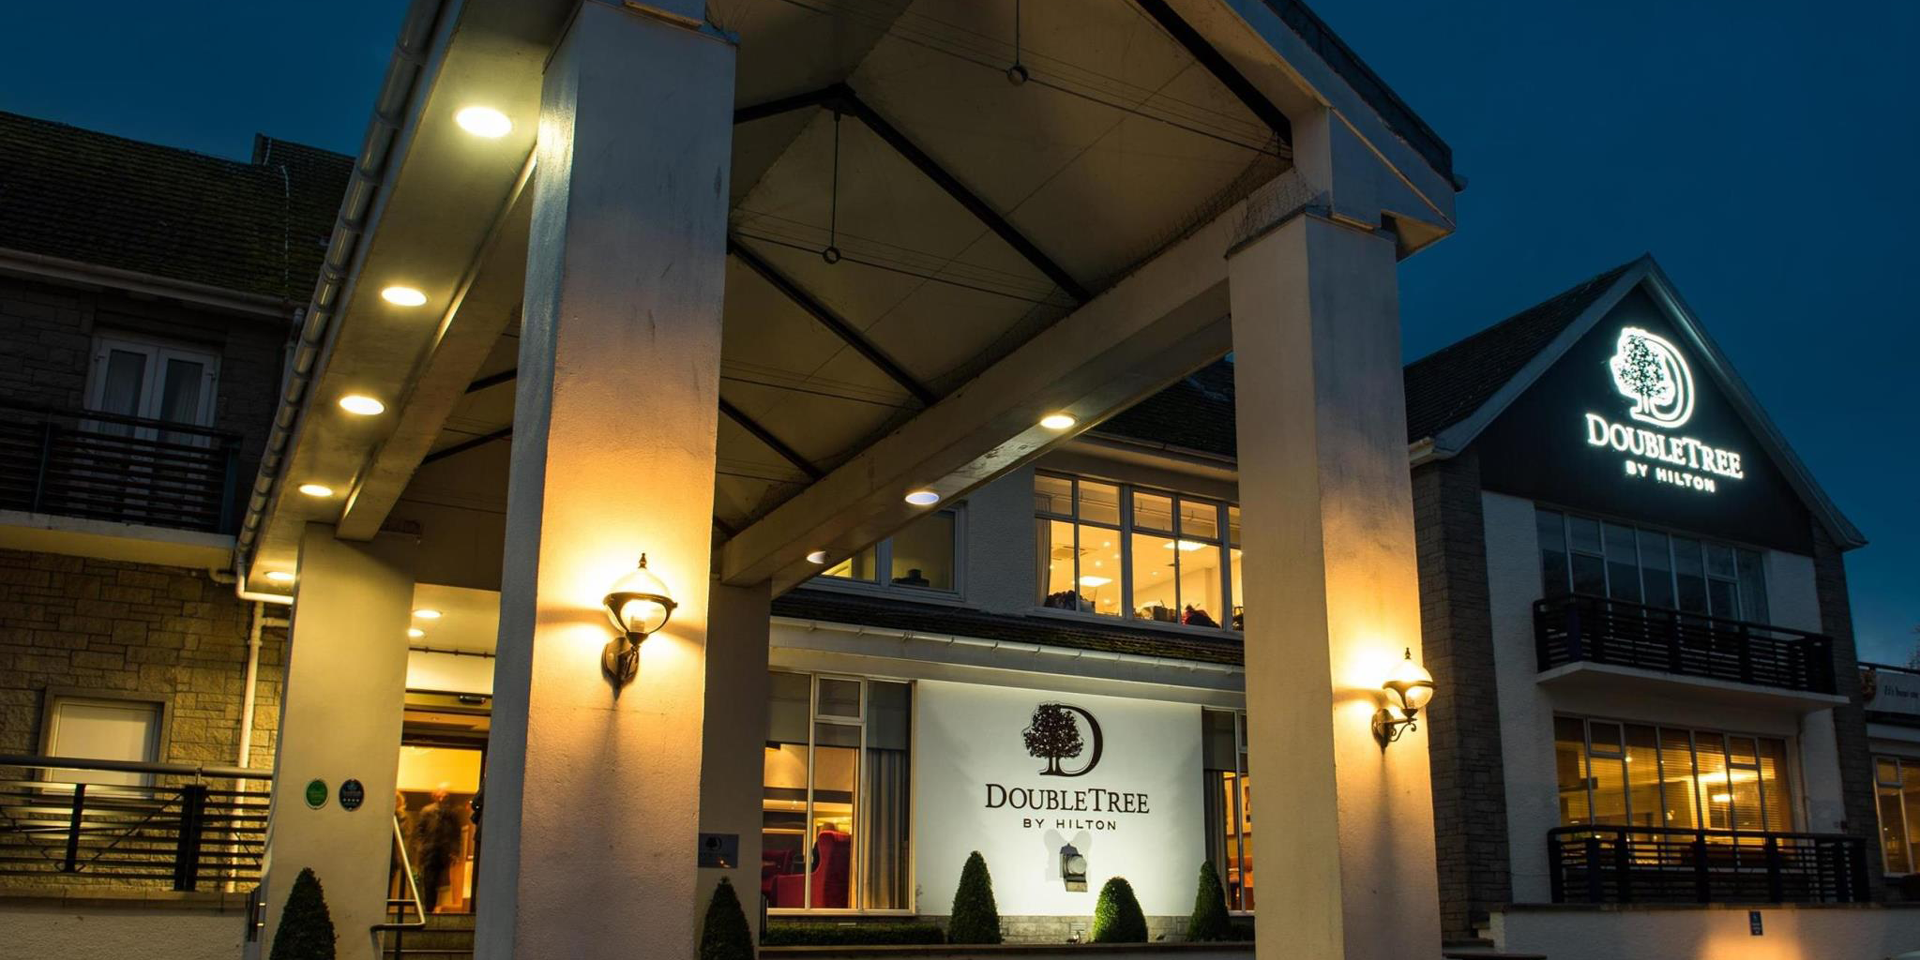 Scottish DoubleTree by Hilton Property Sold to 7 Hospitality [Download Chain Report]